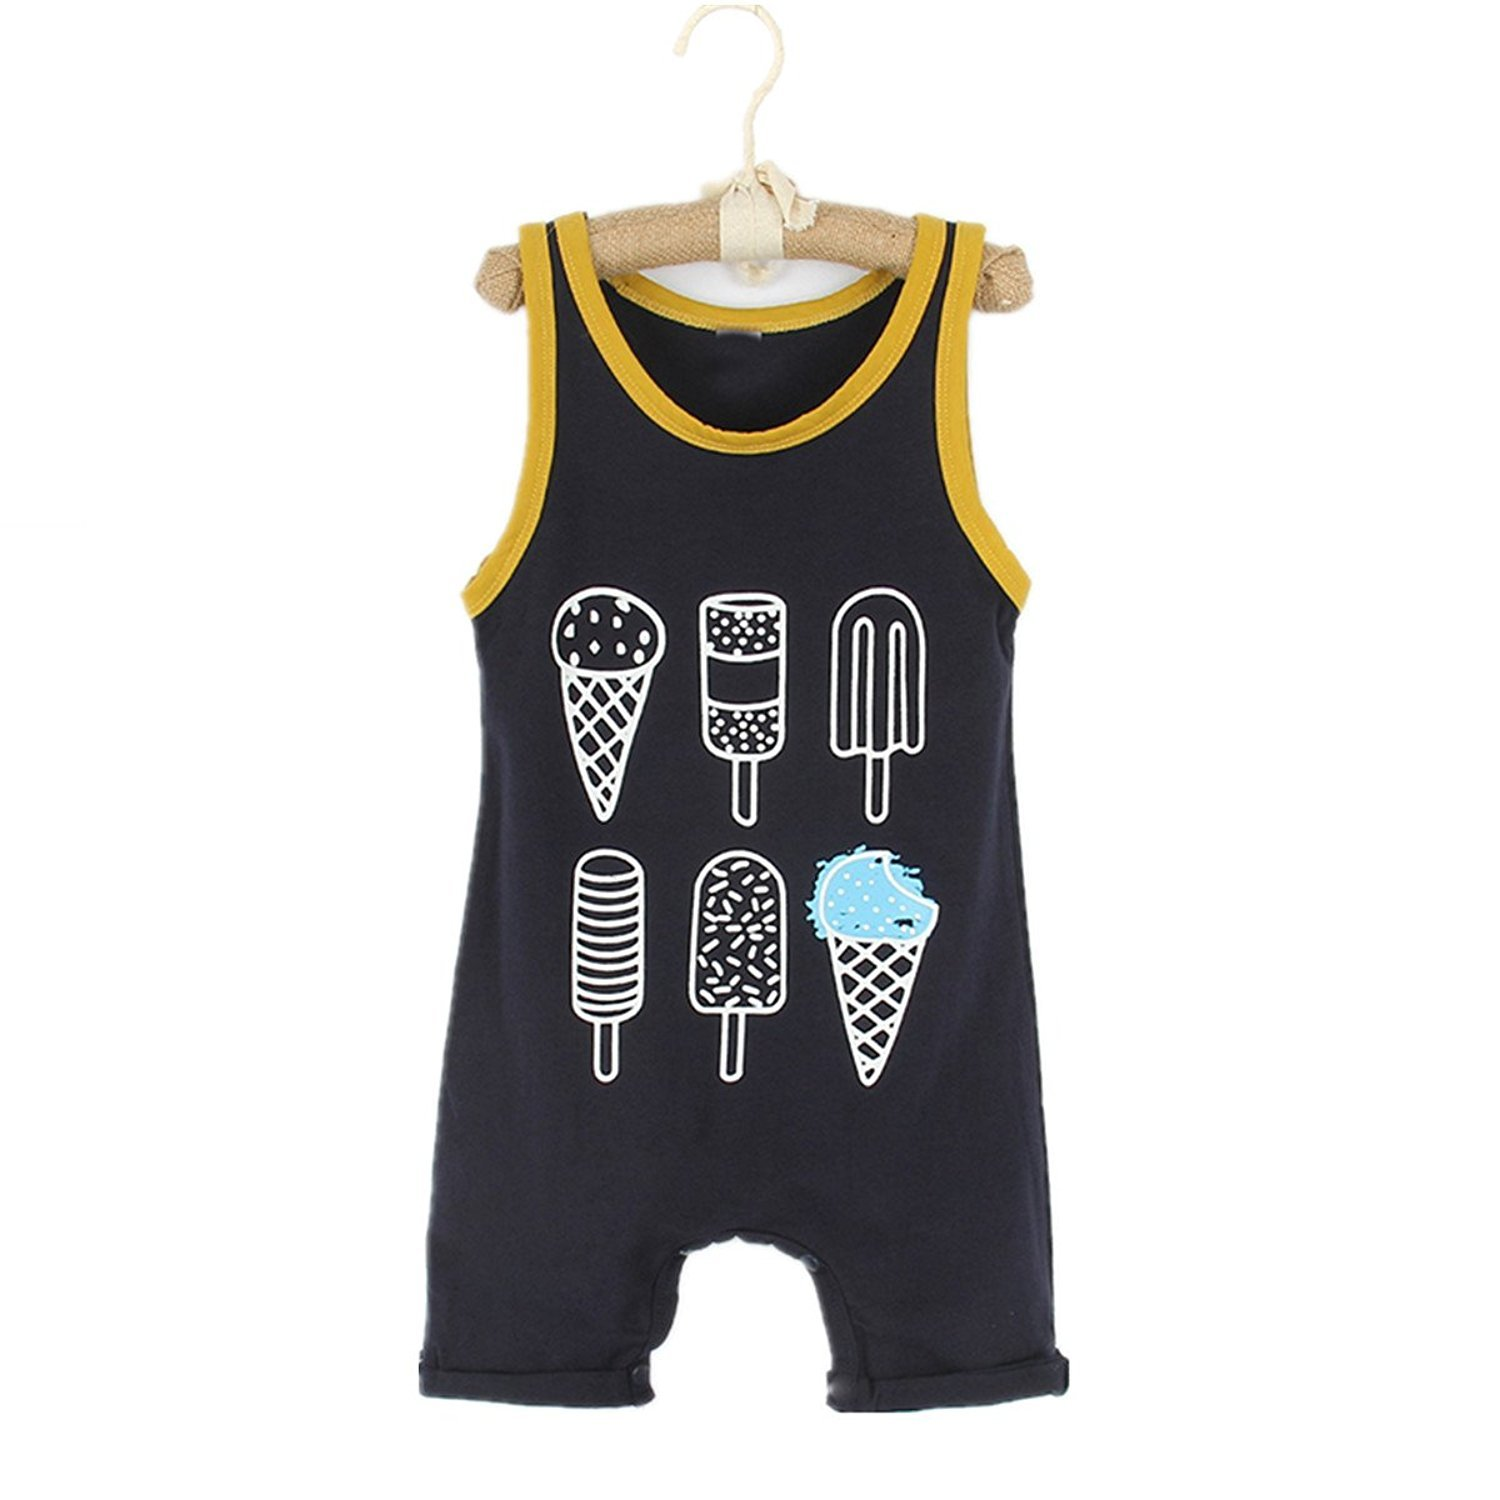 Younger Tree Toddler Baby Boy Girl Romper Sleeveless Ice Cream Print Jumpsuit Summer Clothes Set (Black, 18-24 Months)